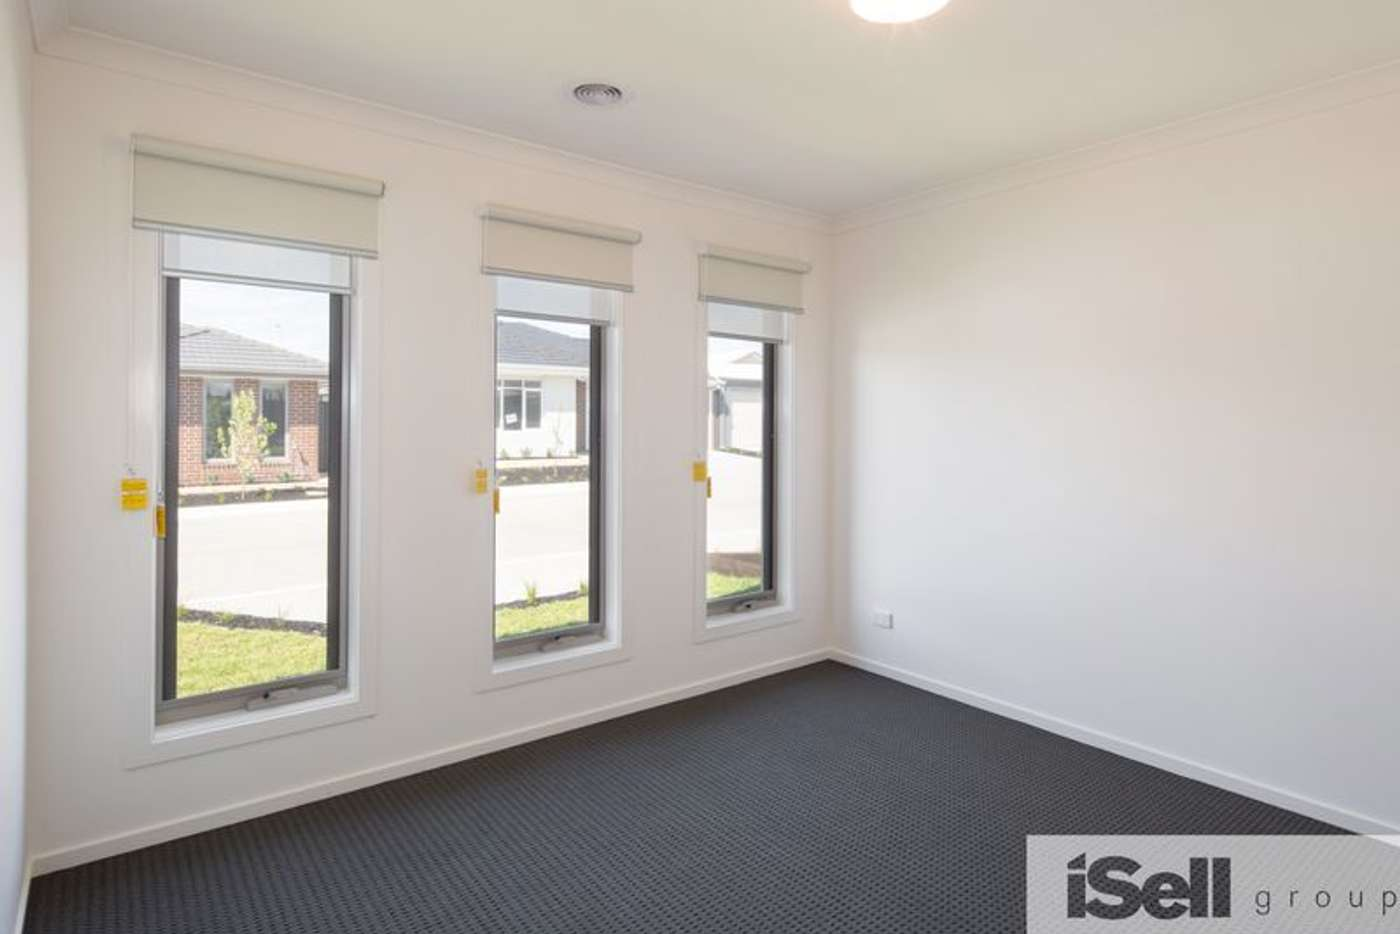 Sixth view of Homely house listing, 10 Naso Place, Clyde North VIC 3978